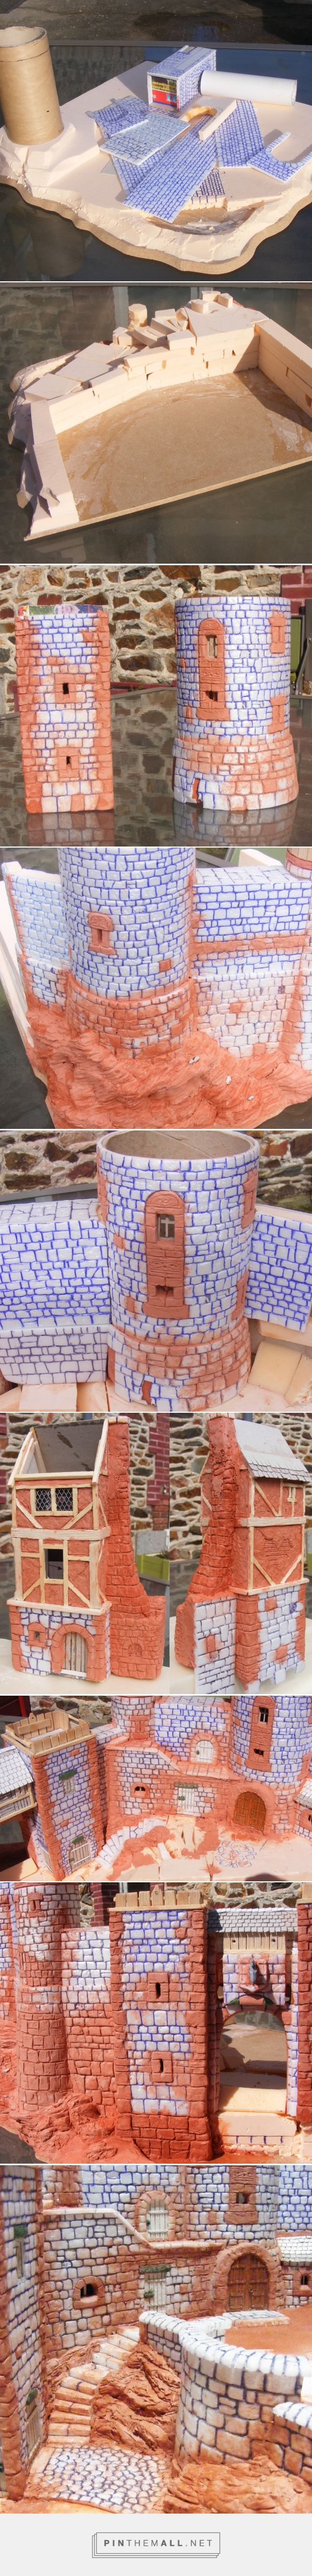 25 best ideas about game terrain on pinterest wargaming